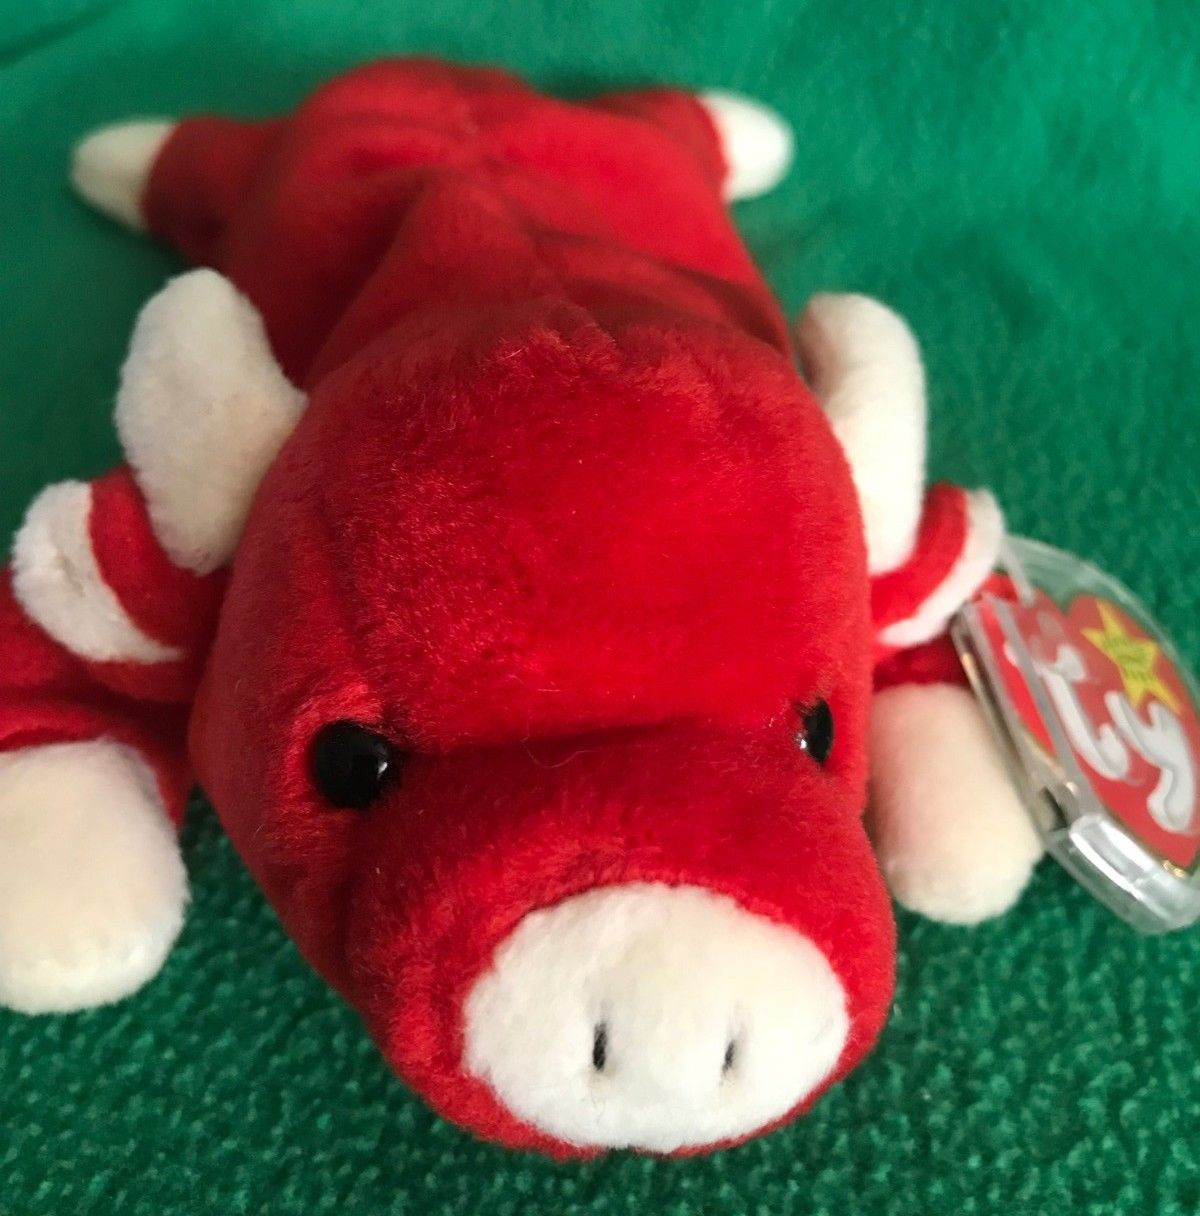 8b64f9dc1da Ty Beanie Baby SNORT The Red Bull PVC MWMT 9 1995 Vintage Stuffed Animal Toy